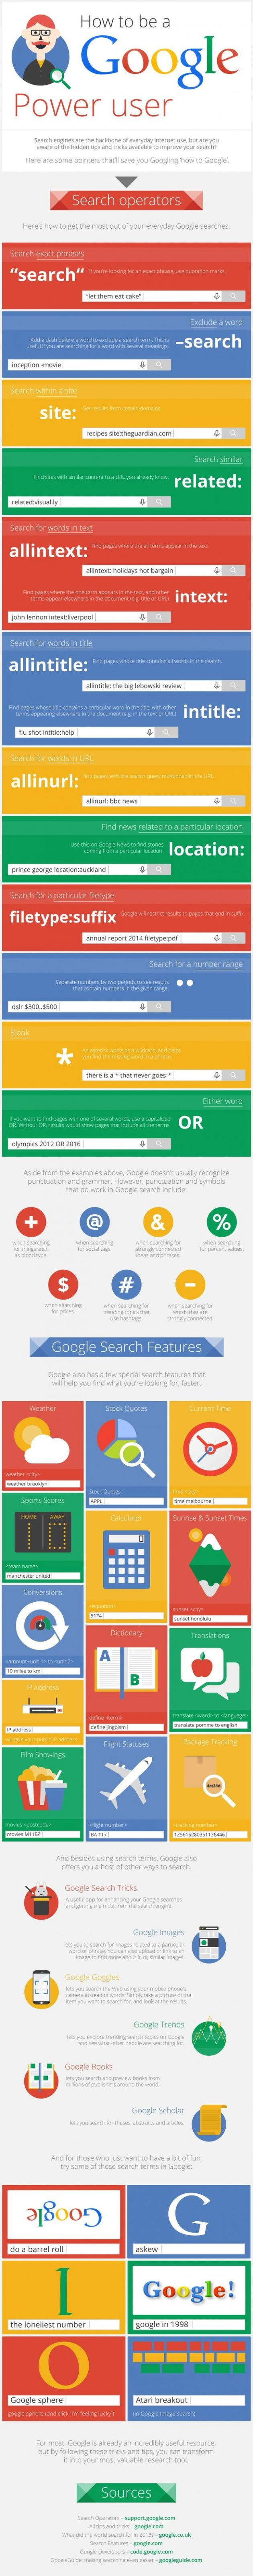 infographic zo word je een google power player